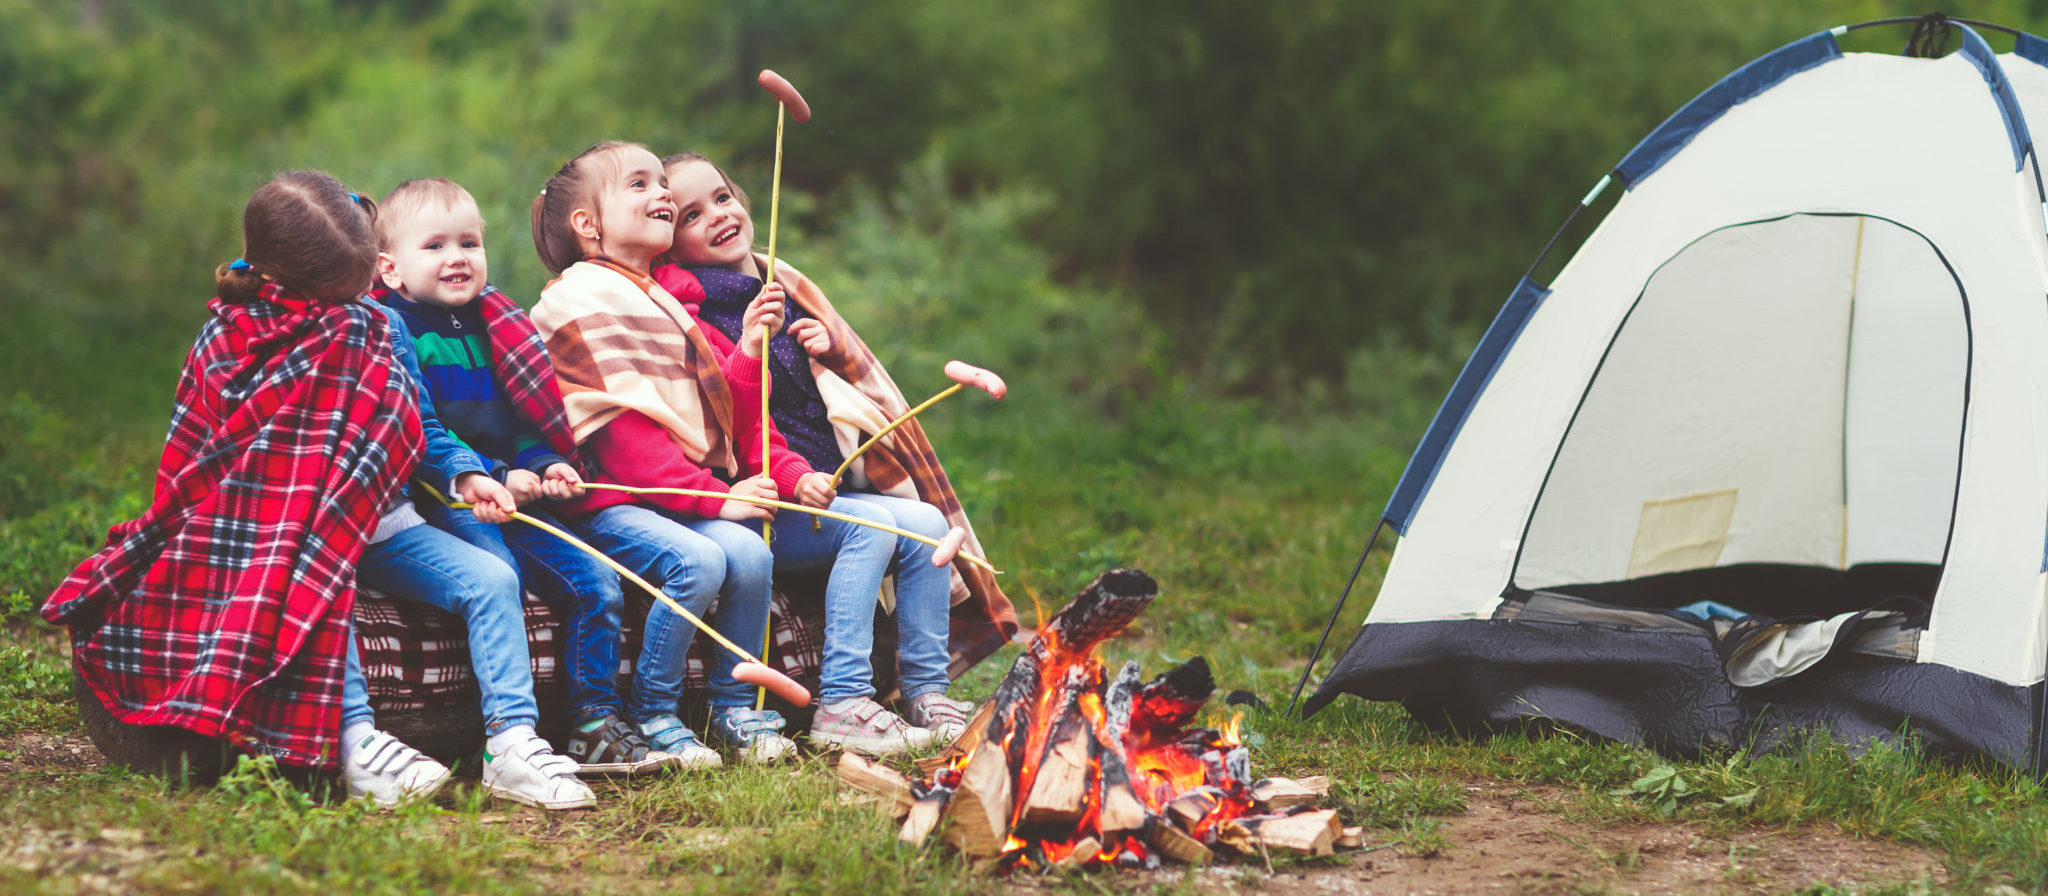 Campfire memories can last a lifetime, so why not try to make it as good of a memory as possible with the addition of some campfire songs for kids?